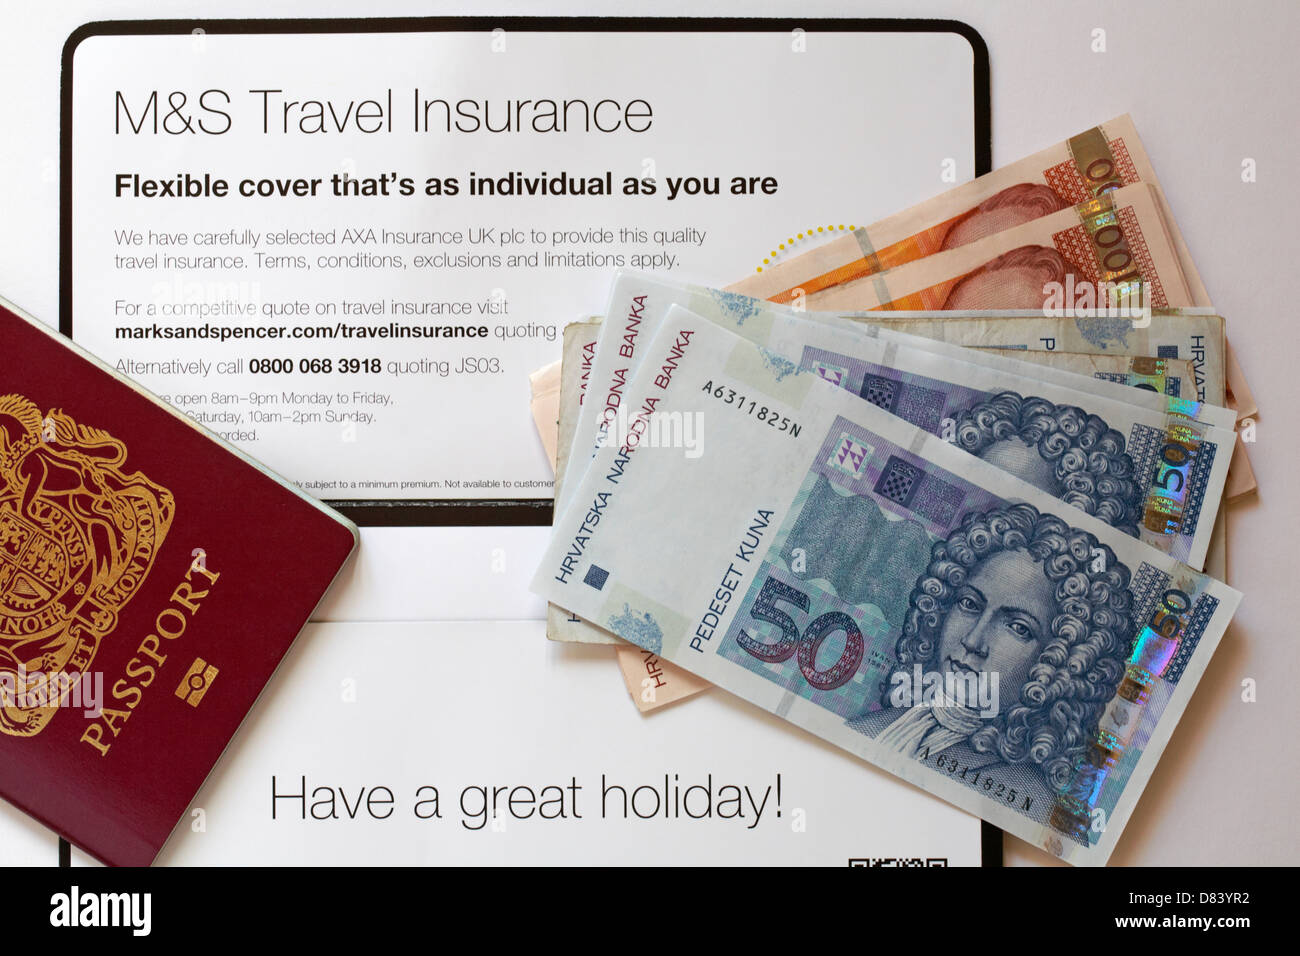 Have a great holiday - M&S Travel Insurance, passport and foreign currency for holiday in Croatia - Stock Image